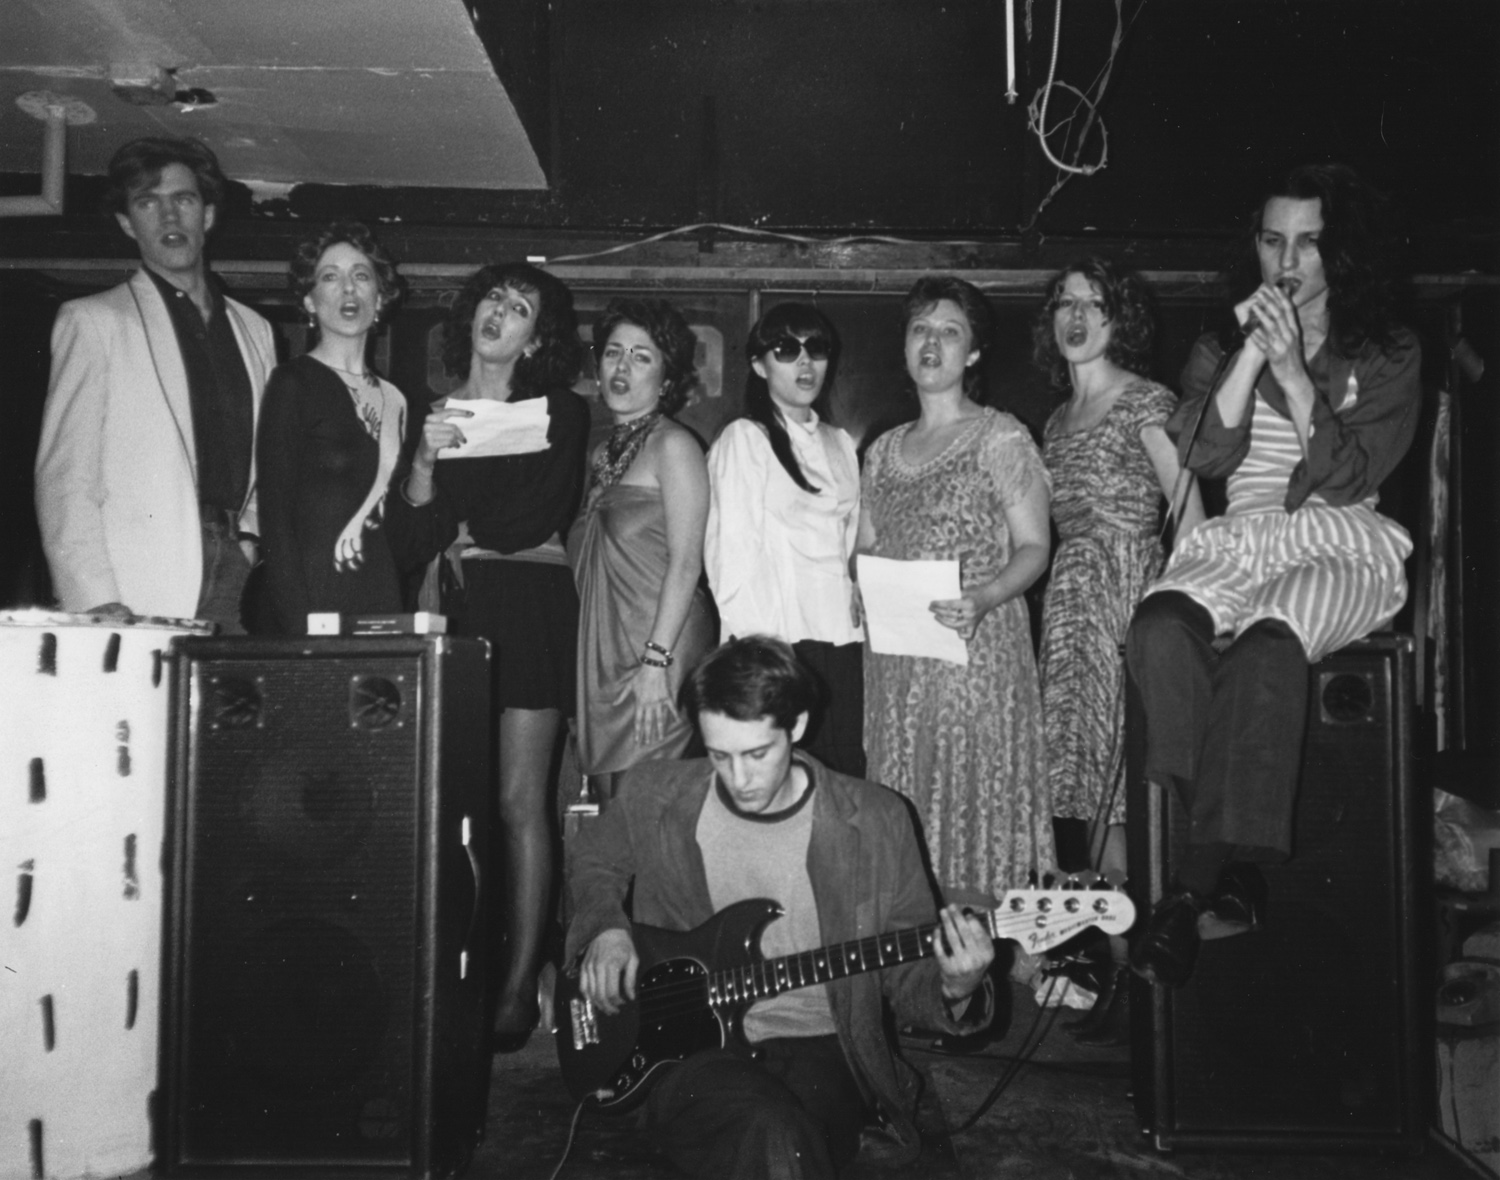 Jill Kroesen (far right) with her chorus at No Rio. Photo by Tom Warren